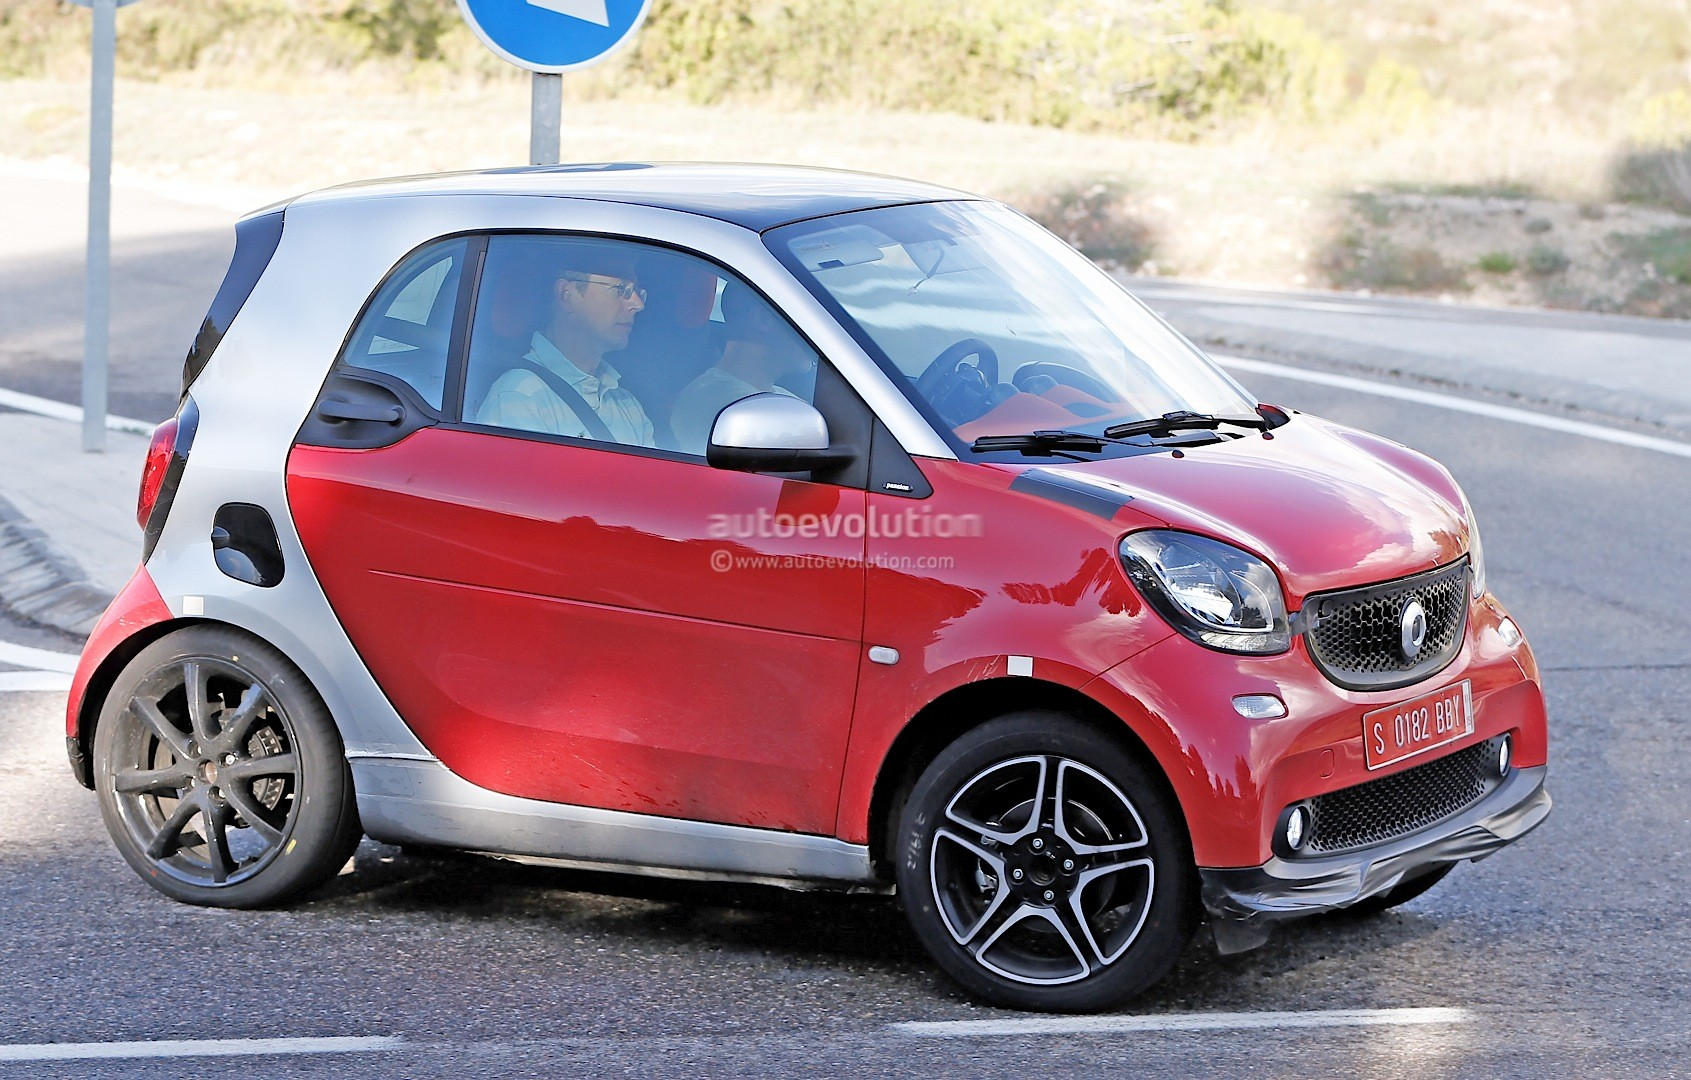 2015 Smart Fortwo Brabus Shows Details: Geneva Debut Likely ...